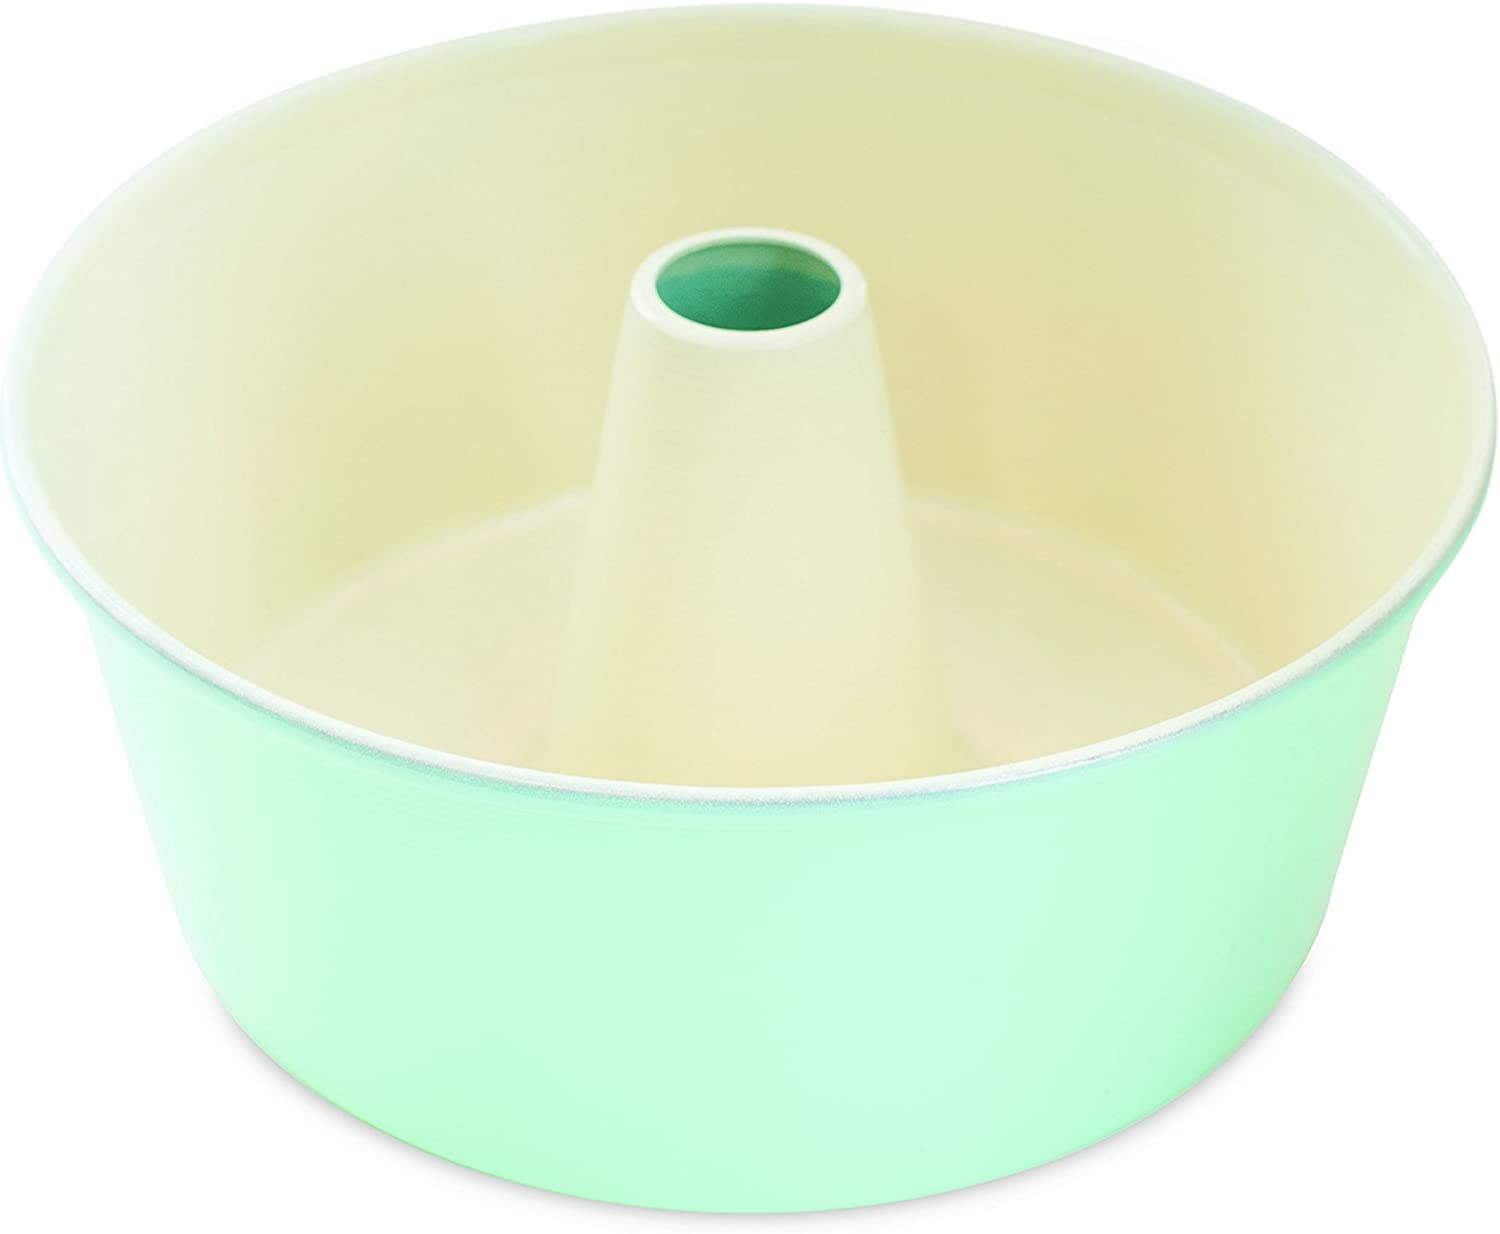 Nordic Ware 12-Cup Angel Food Cake Pan, Mint